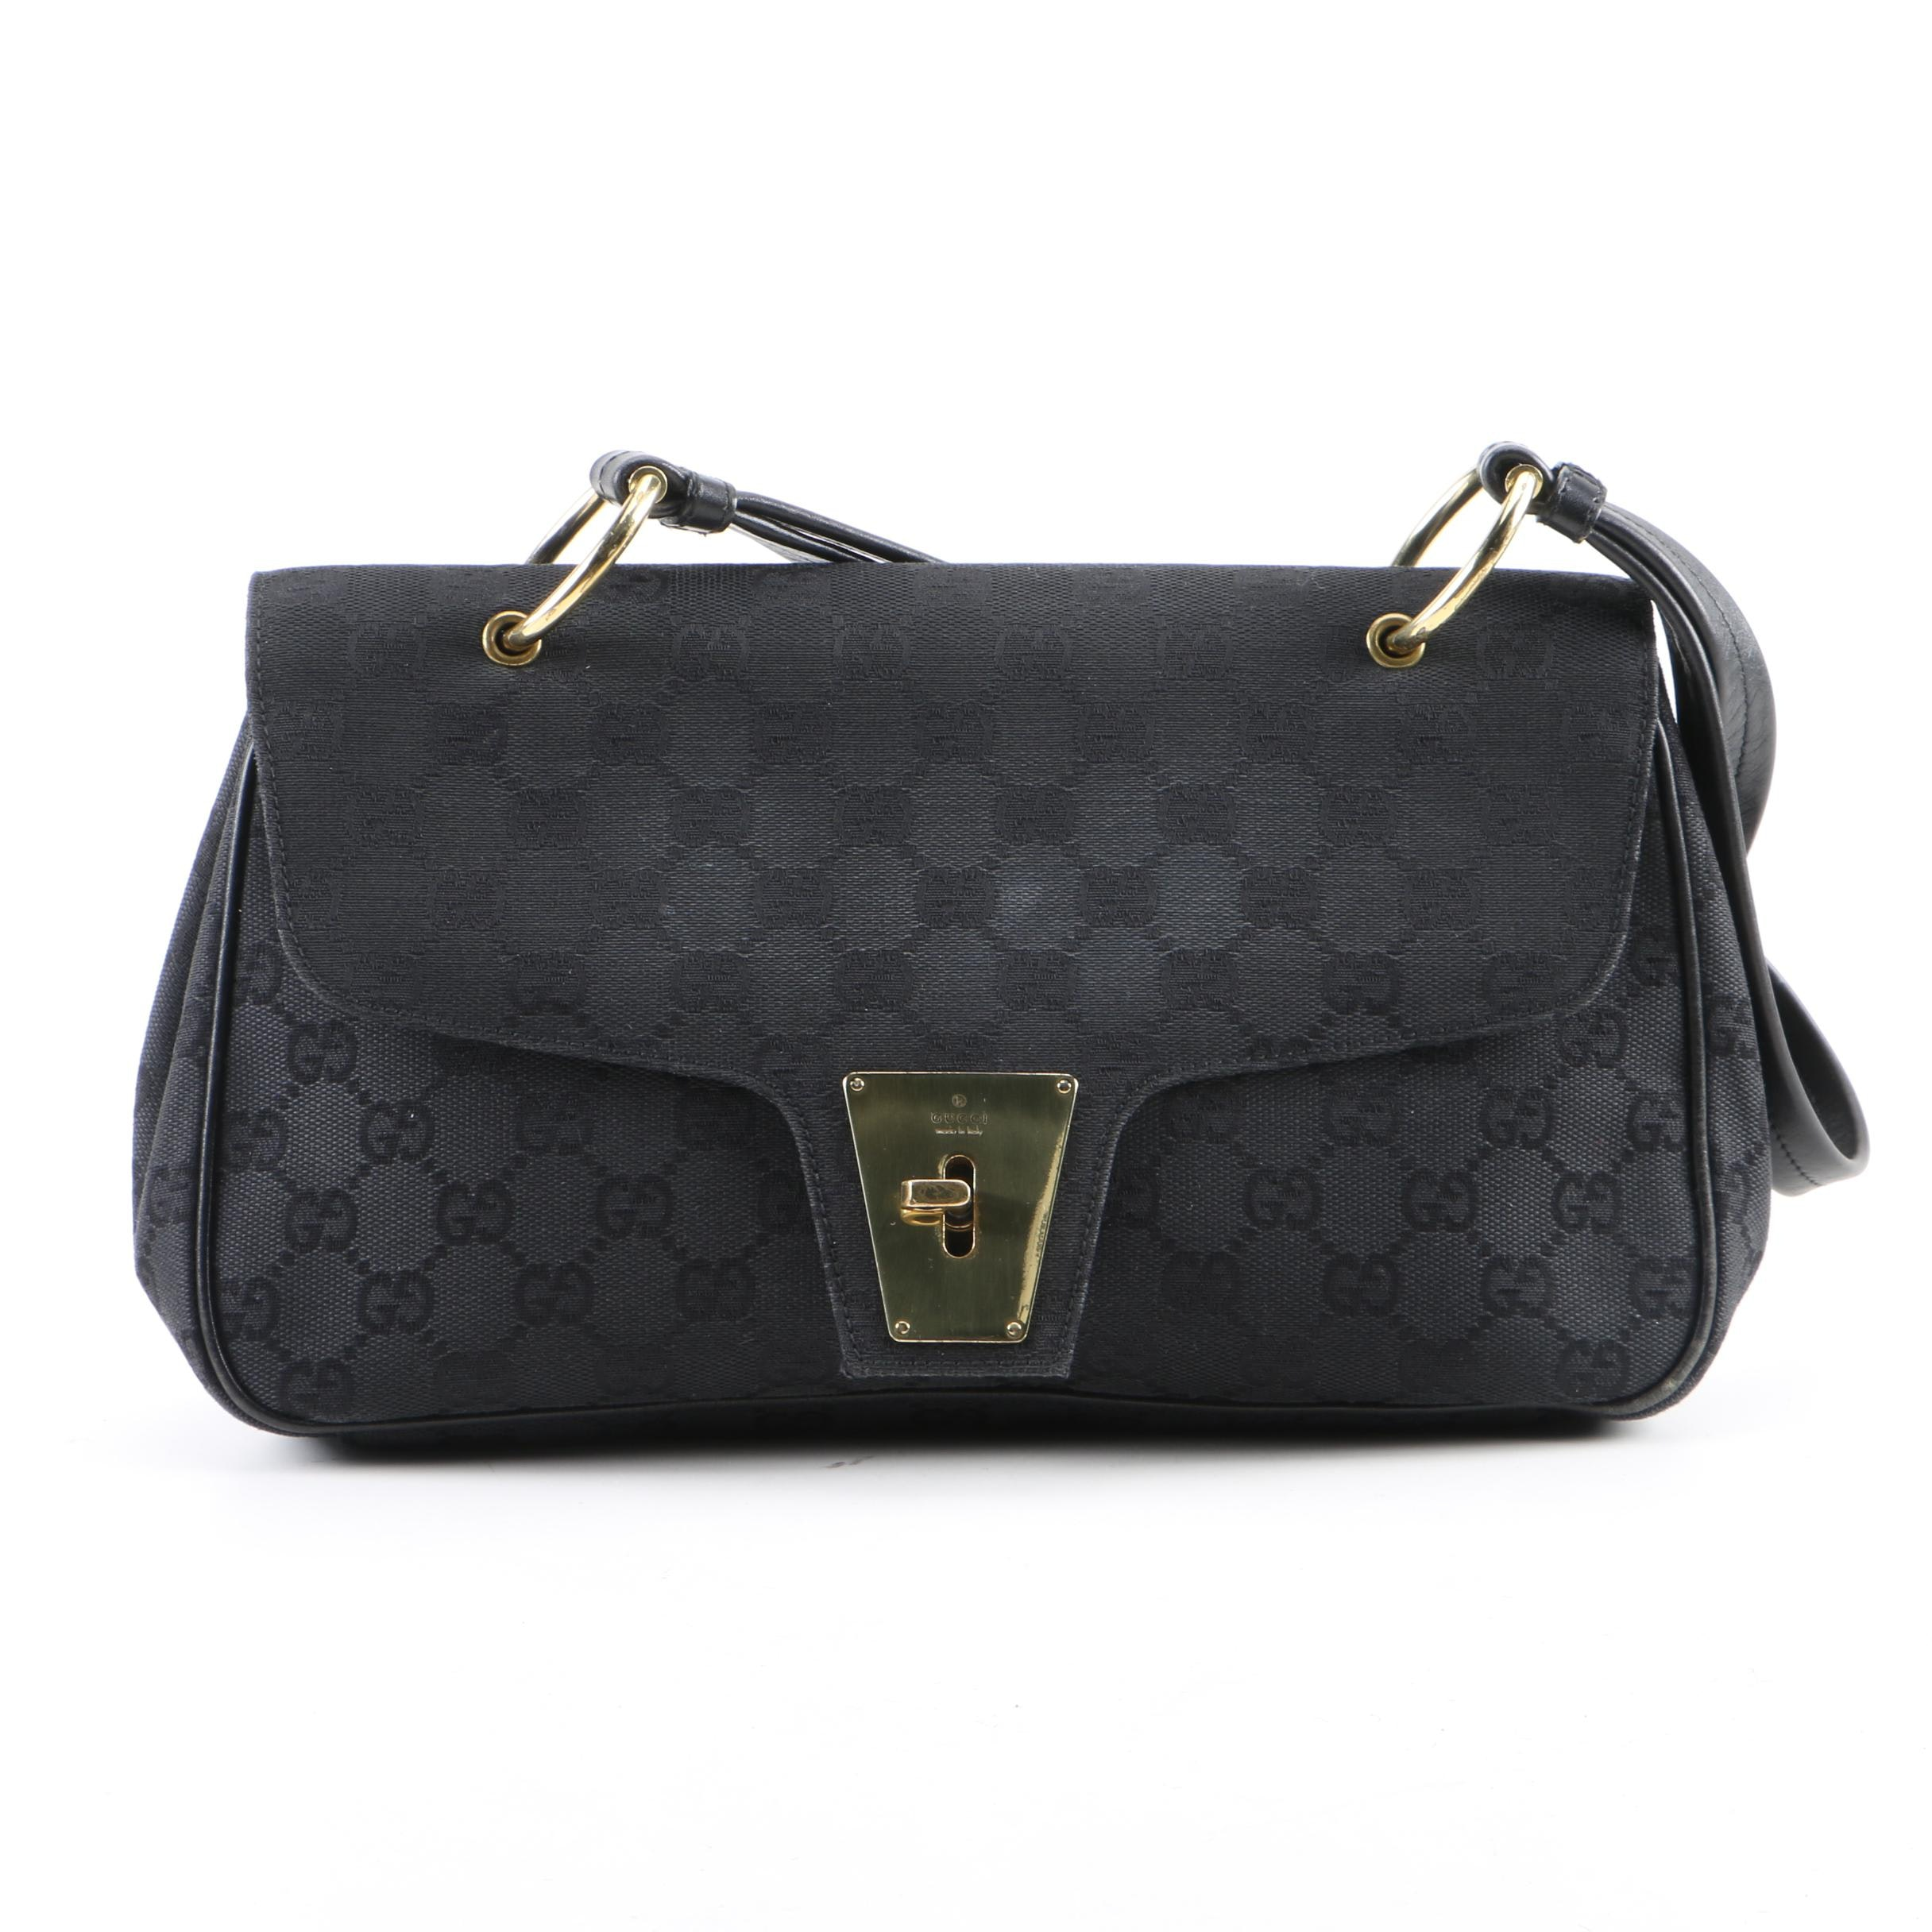 Gucci GG Black Canvas and Leather Handbag